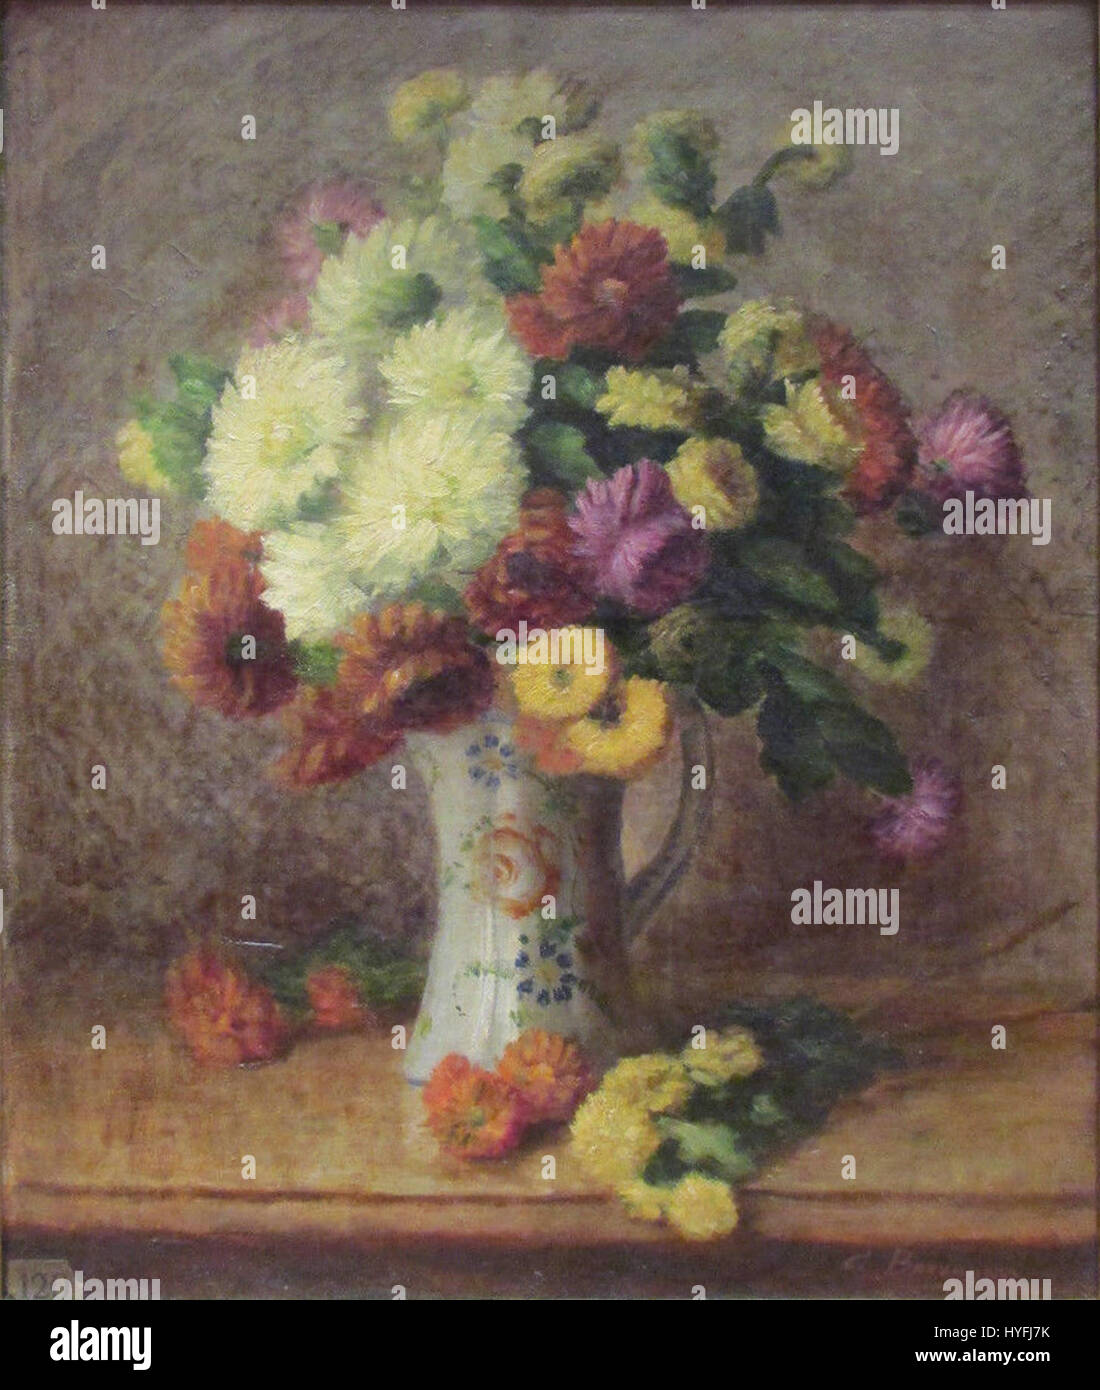 Oil Painting On Canvas Bouquet Stockfotos & Oil Painting On Canvas ...